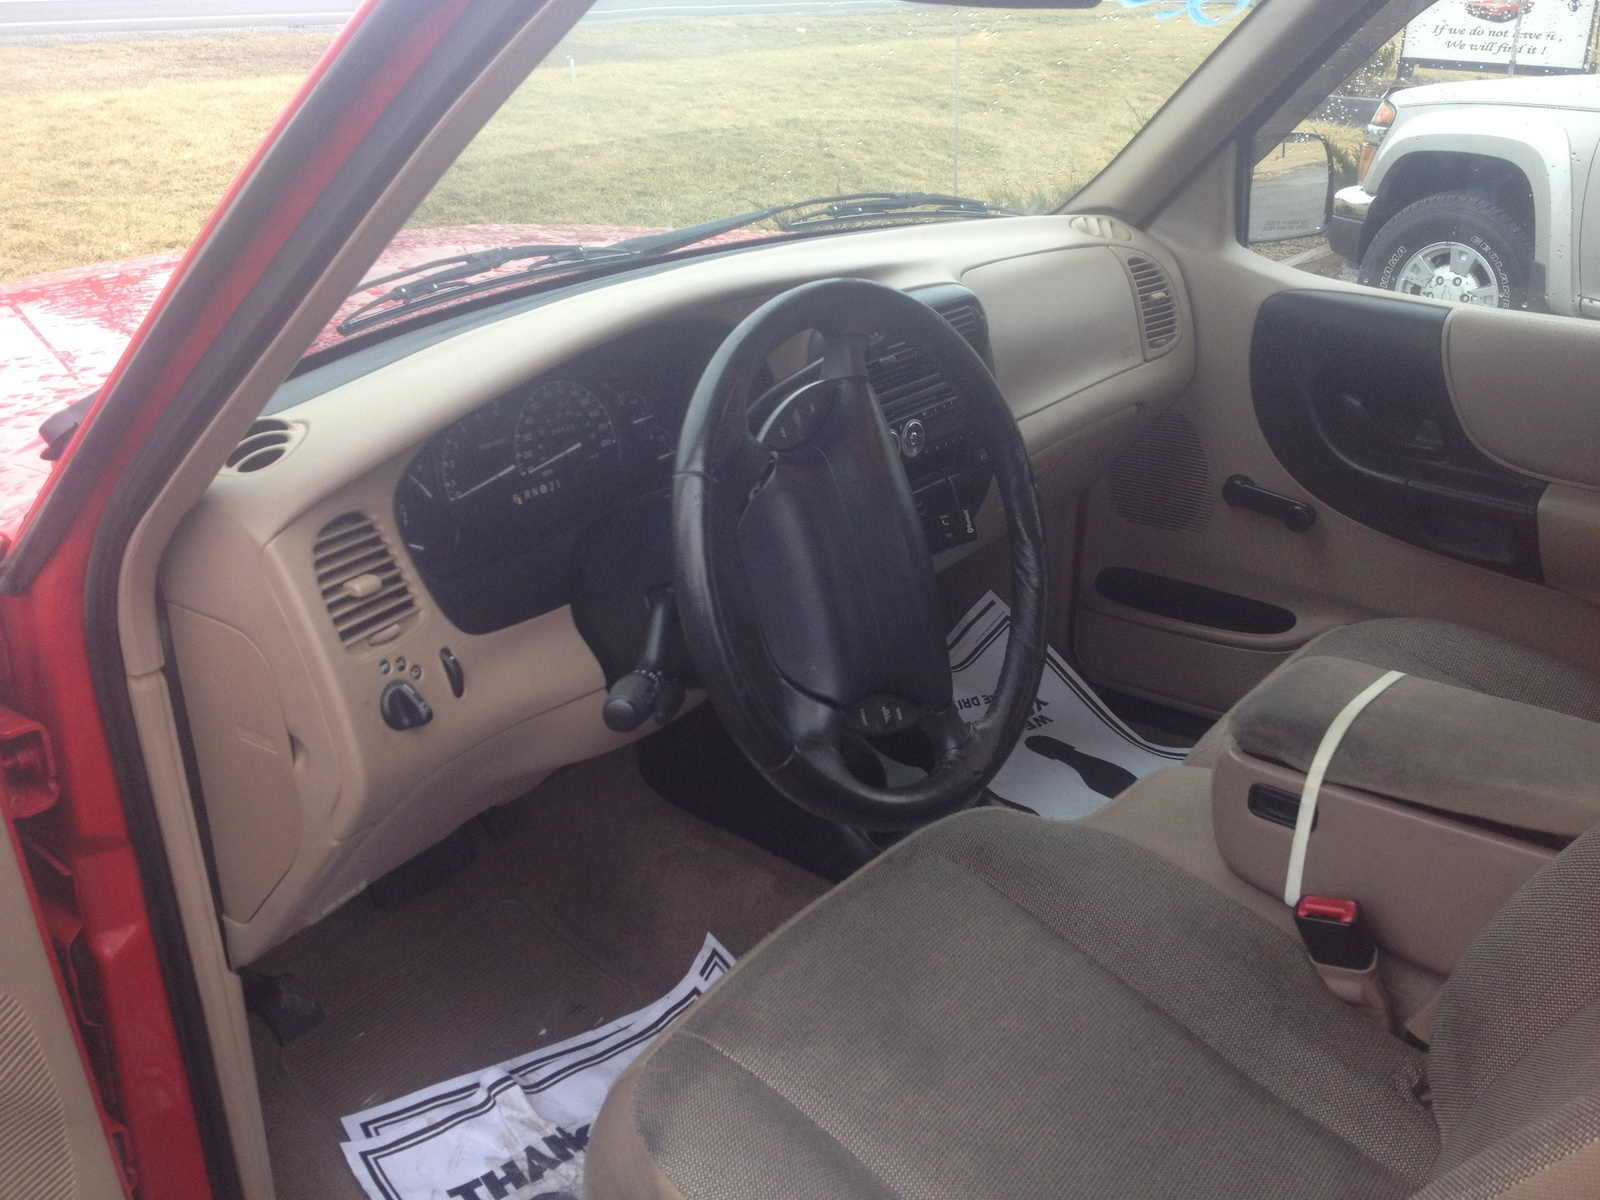 2000 Ford Ranger Interior Pictures Cargurus